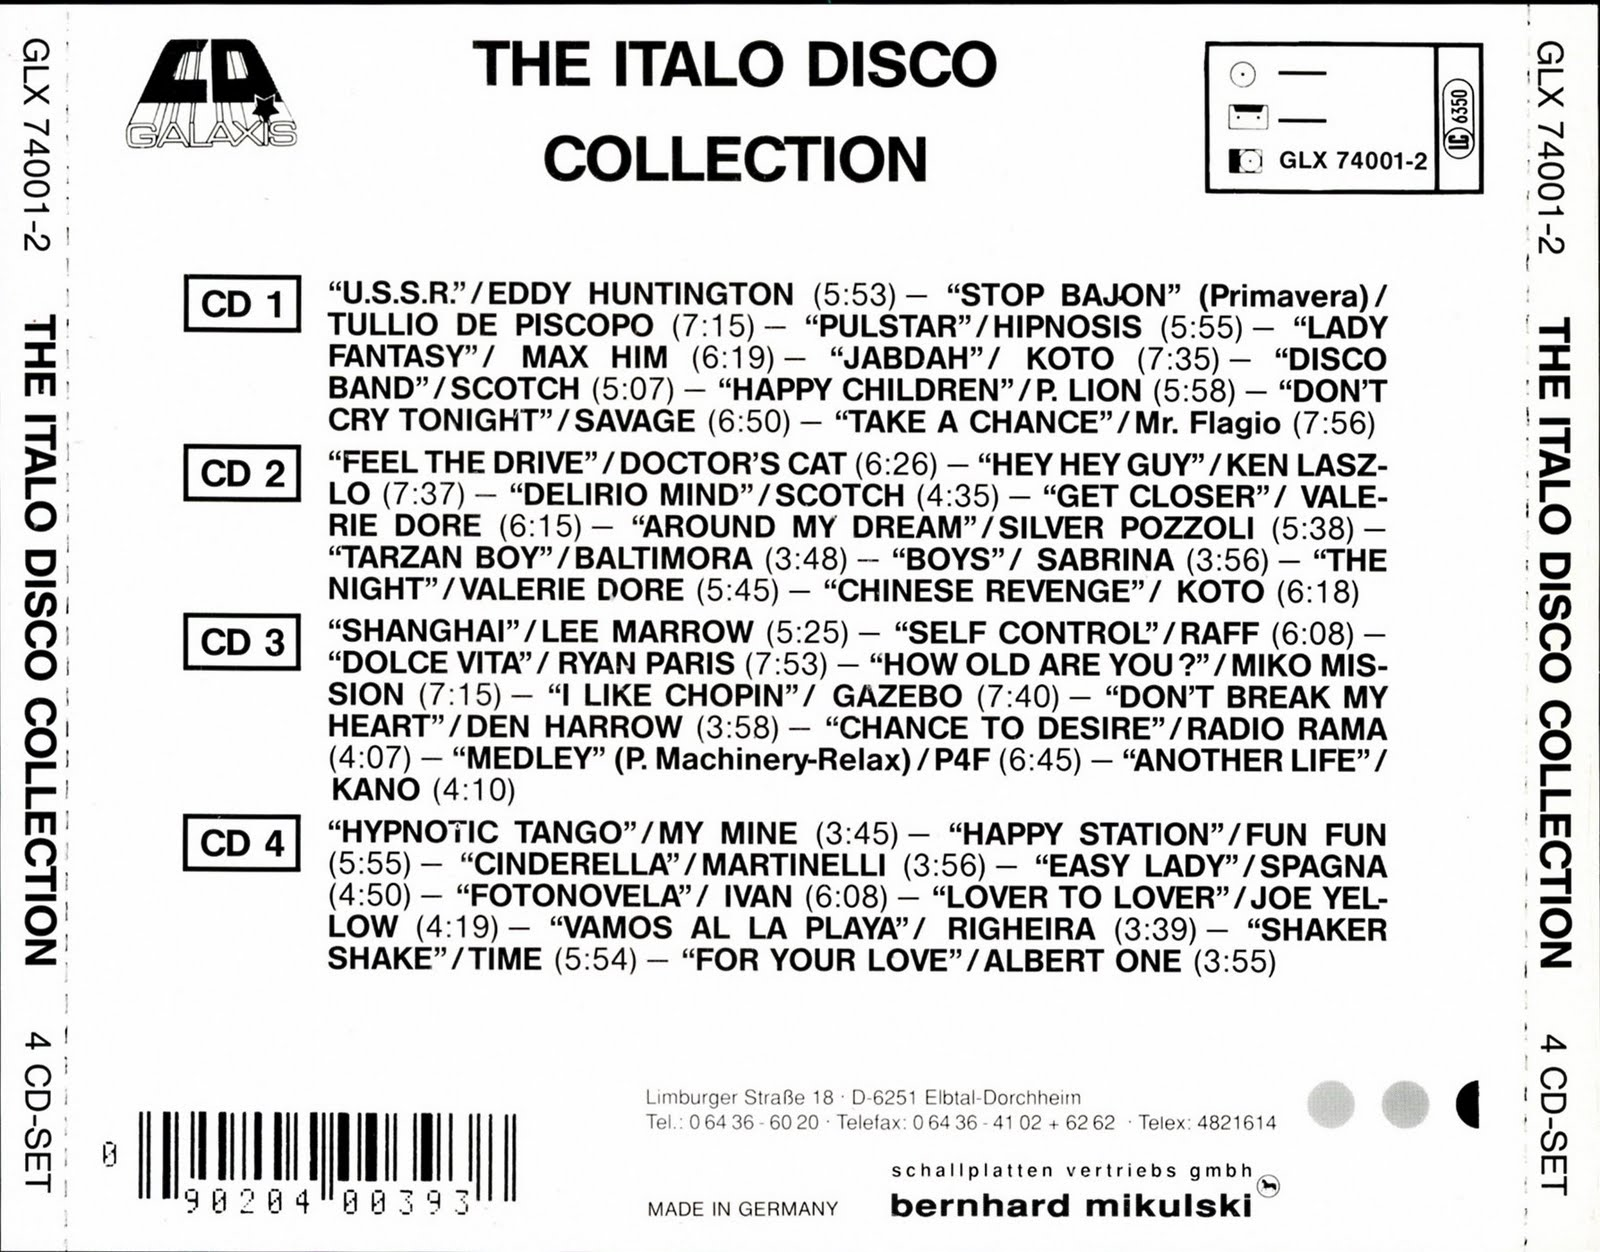 Retro disco hi nrg august 2010 for Classic italo house zenhiser